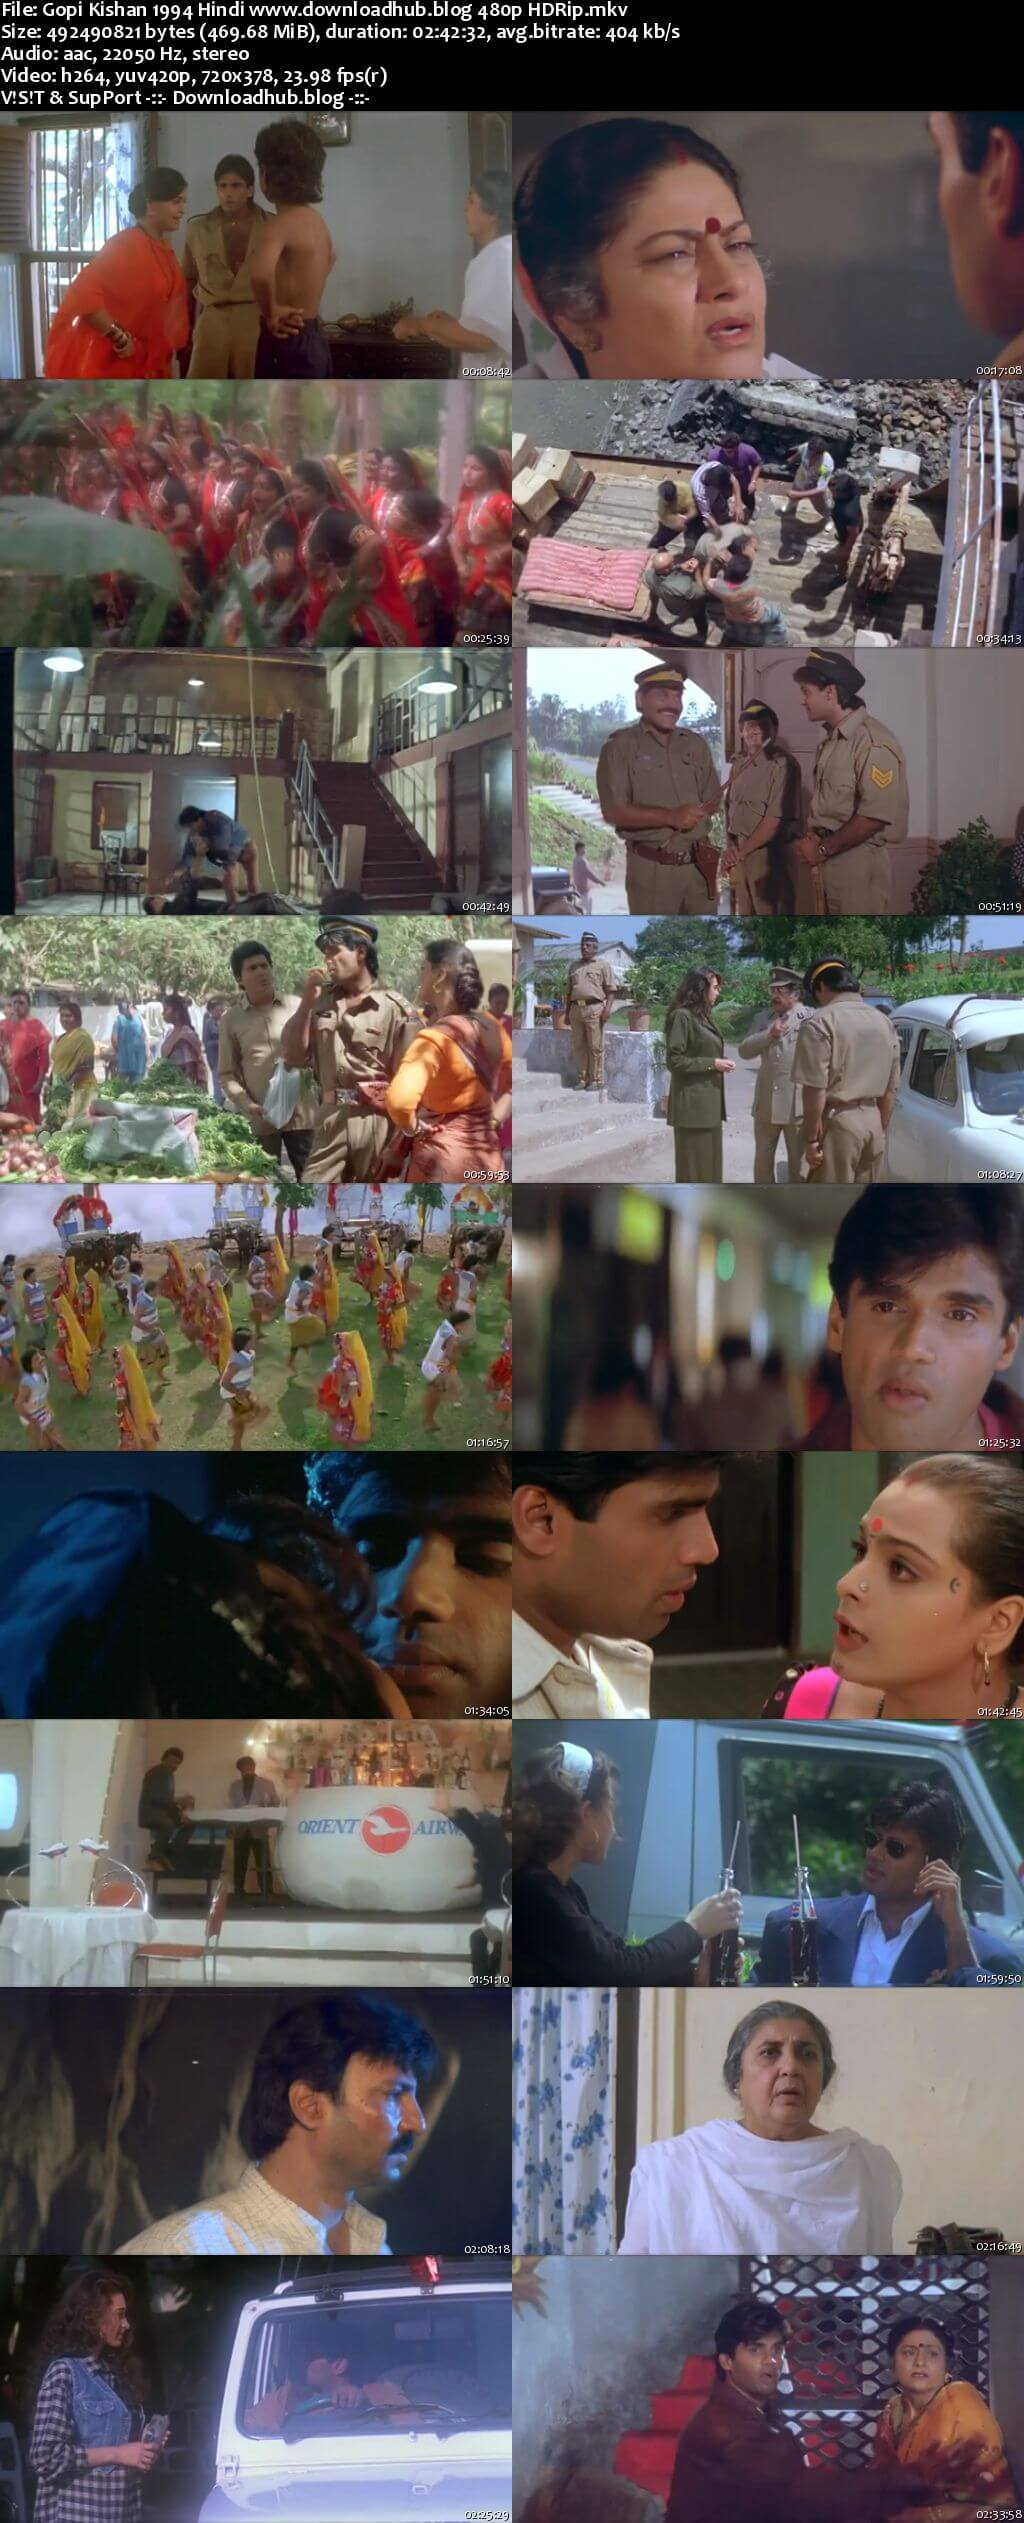 Gopi Kishan 1994 Hindi 450MB HDRip 480p